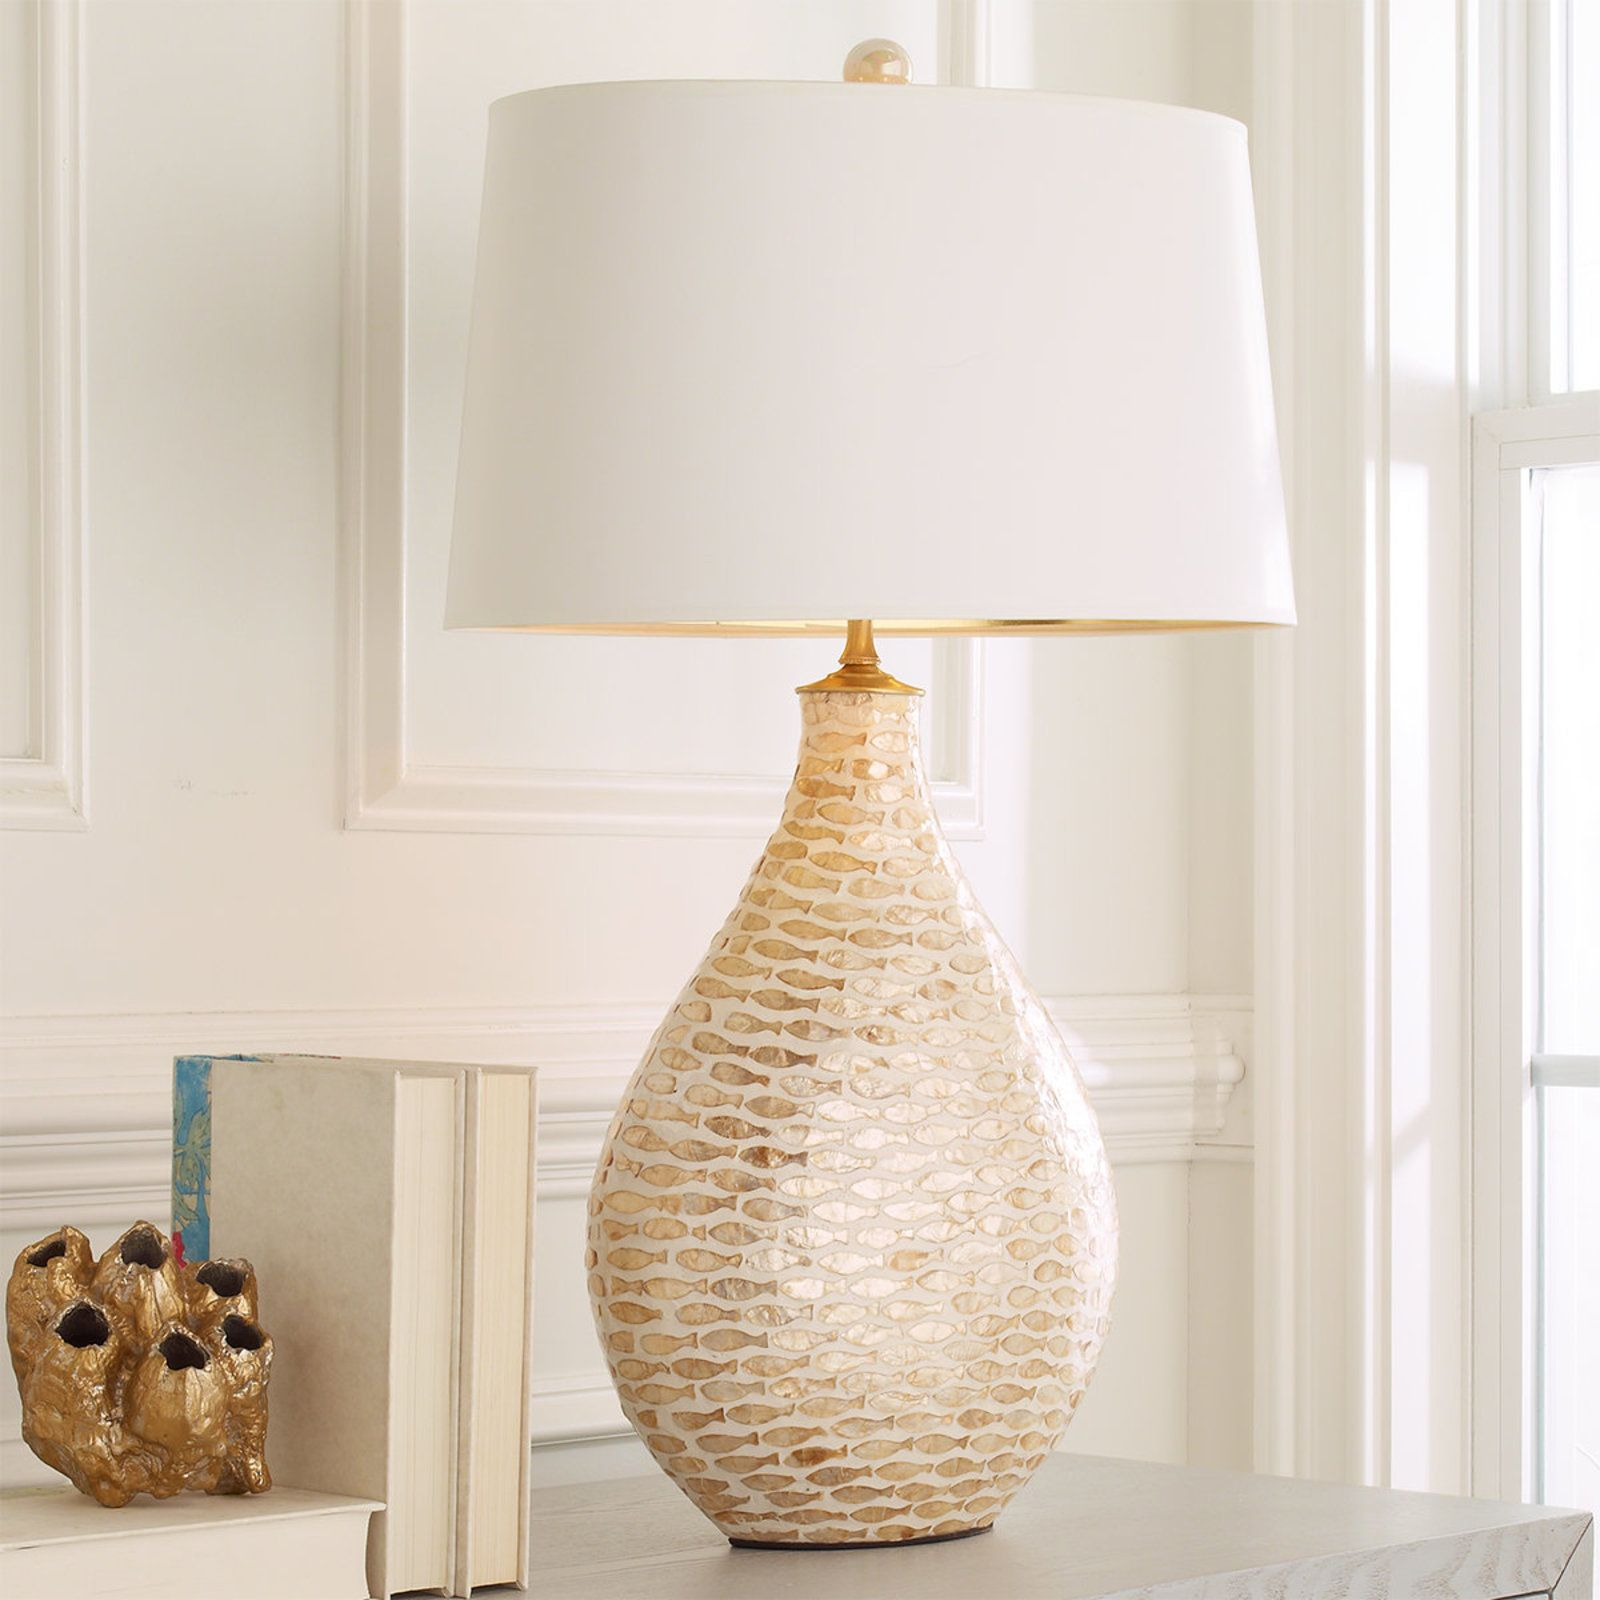 Pisces Capiz Shell Table Lamp Shades Of Light Lamp Antique Lamp Shades Table Lamp Shades